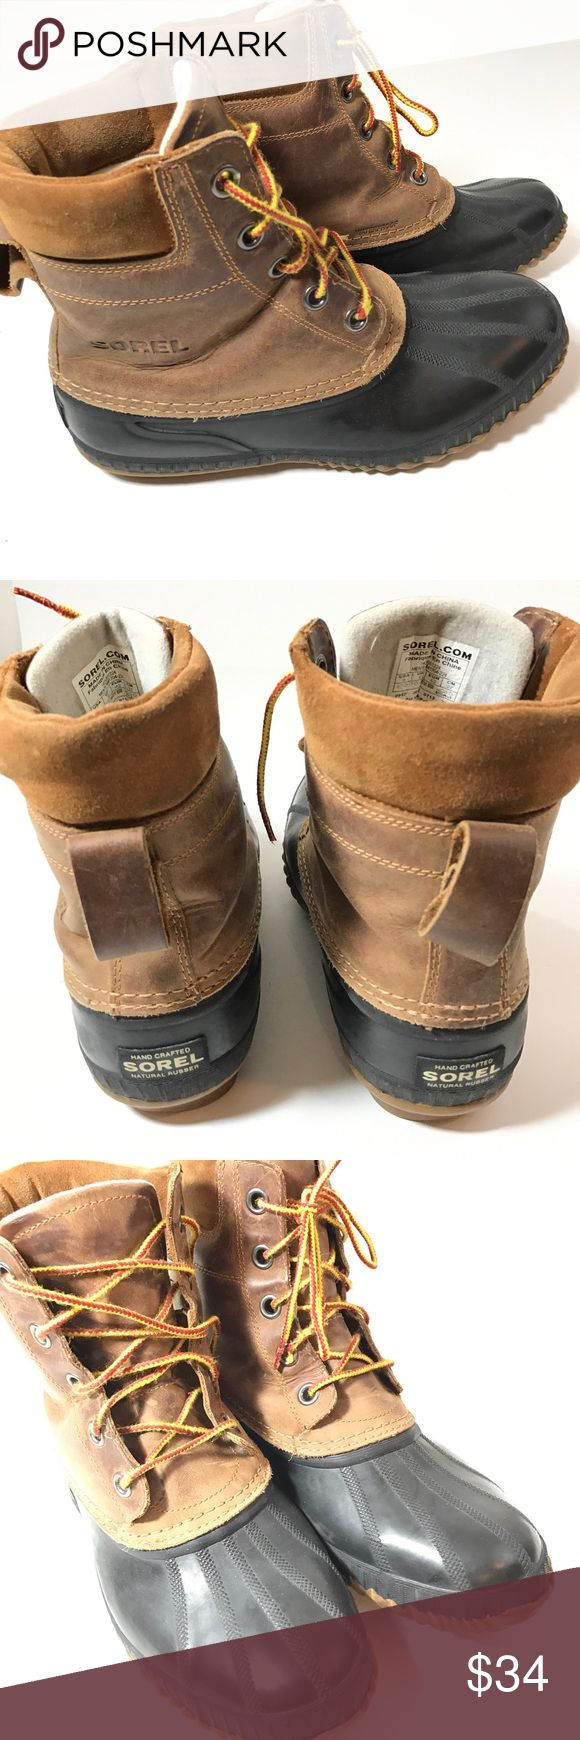 Sorel Cheyenne Waterproof Winter Rain Boots Mens 9 Have some wear to them see photos for overall condition. Inside has some wear as well took it inside picture of boot take a look.   Size 9 men Sorel Shoes Boots